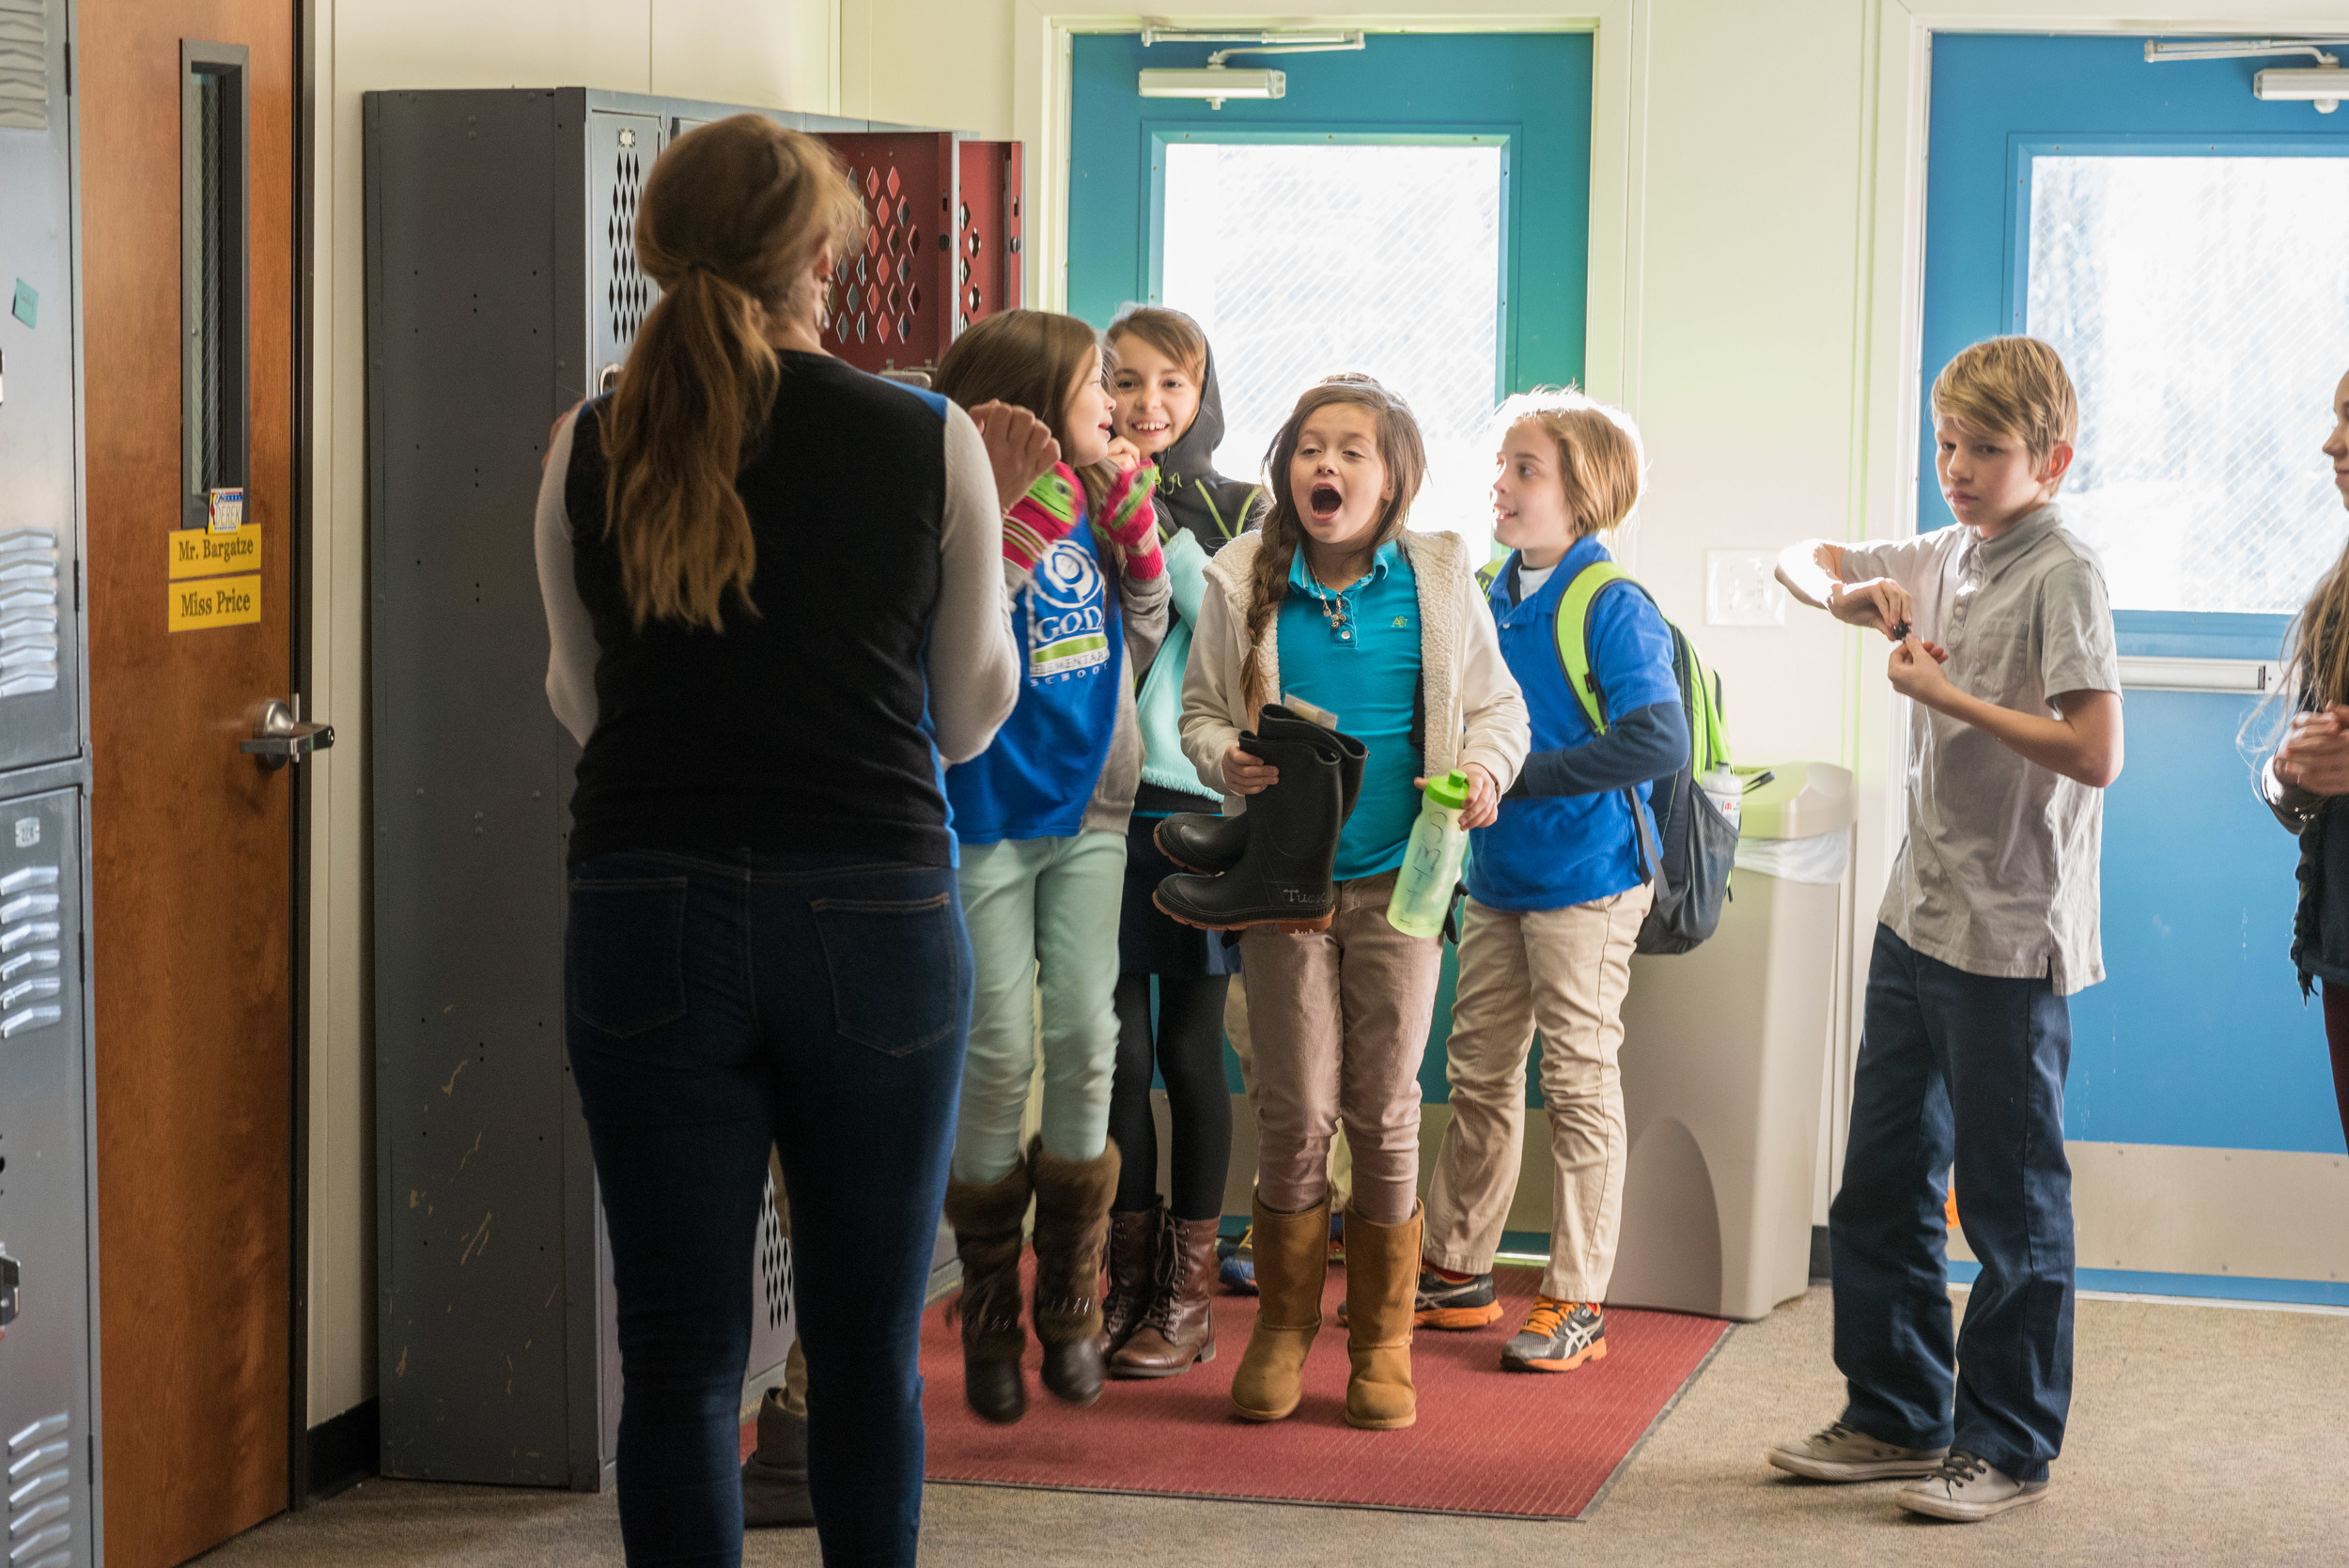 The beginning of the Spring semester was marked by an exciting welcome into our new facility! The spacious rooms and common meeting areas were such a blessing. Each homeroom became a unique space that reflected students' personalities and academic growth.